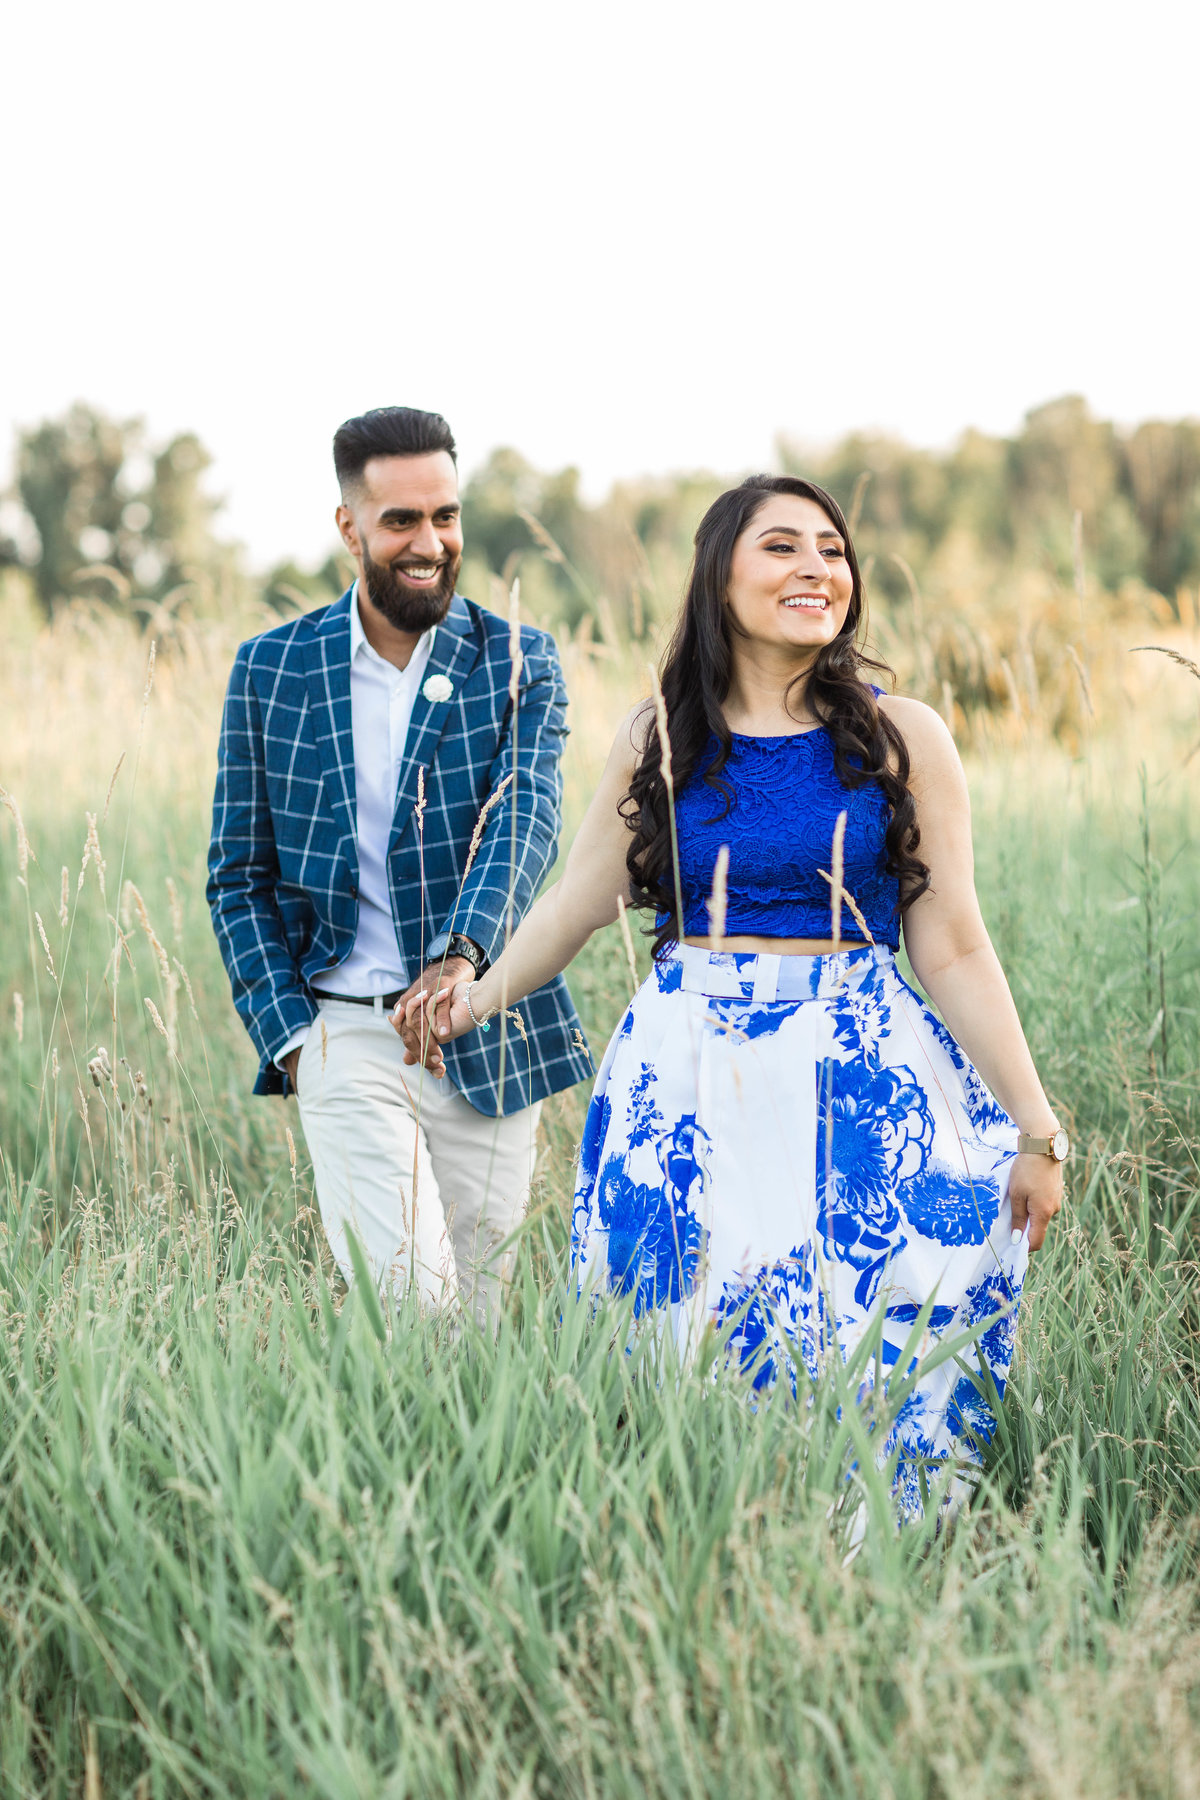 Maha-Bobby-Engagement-Session-Teasers-024